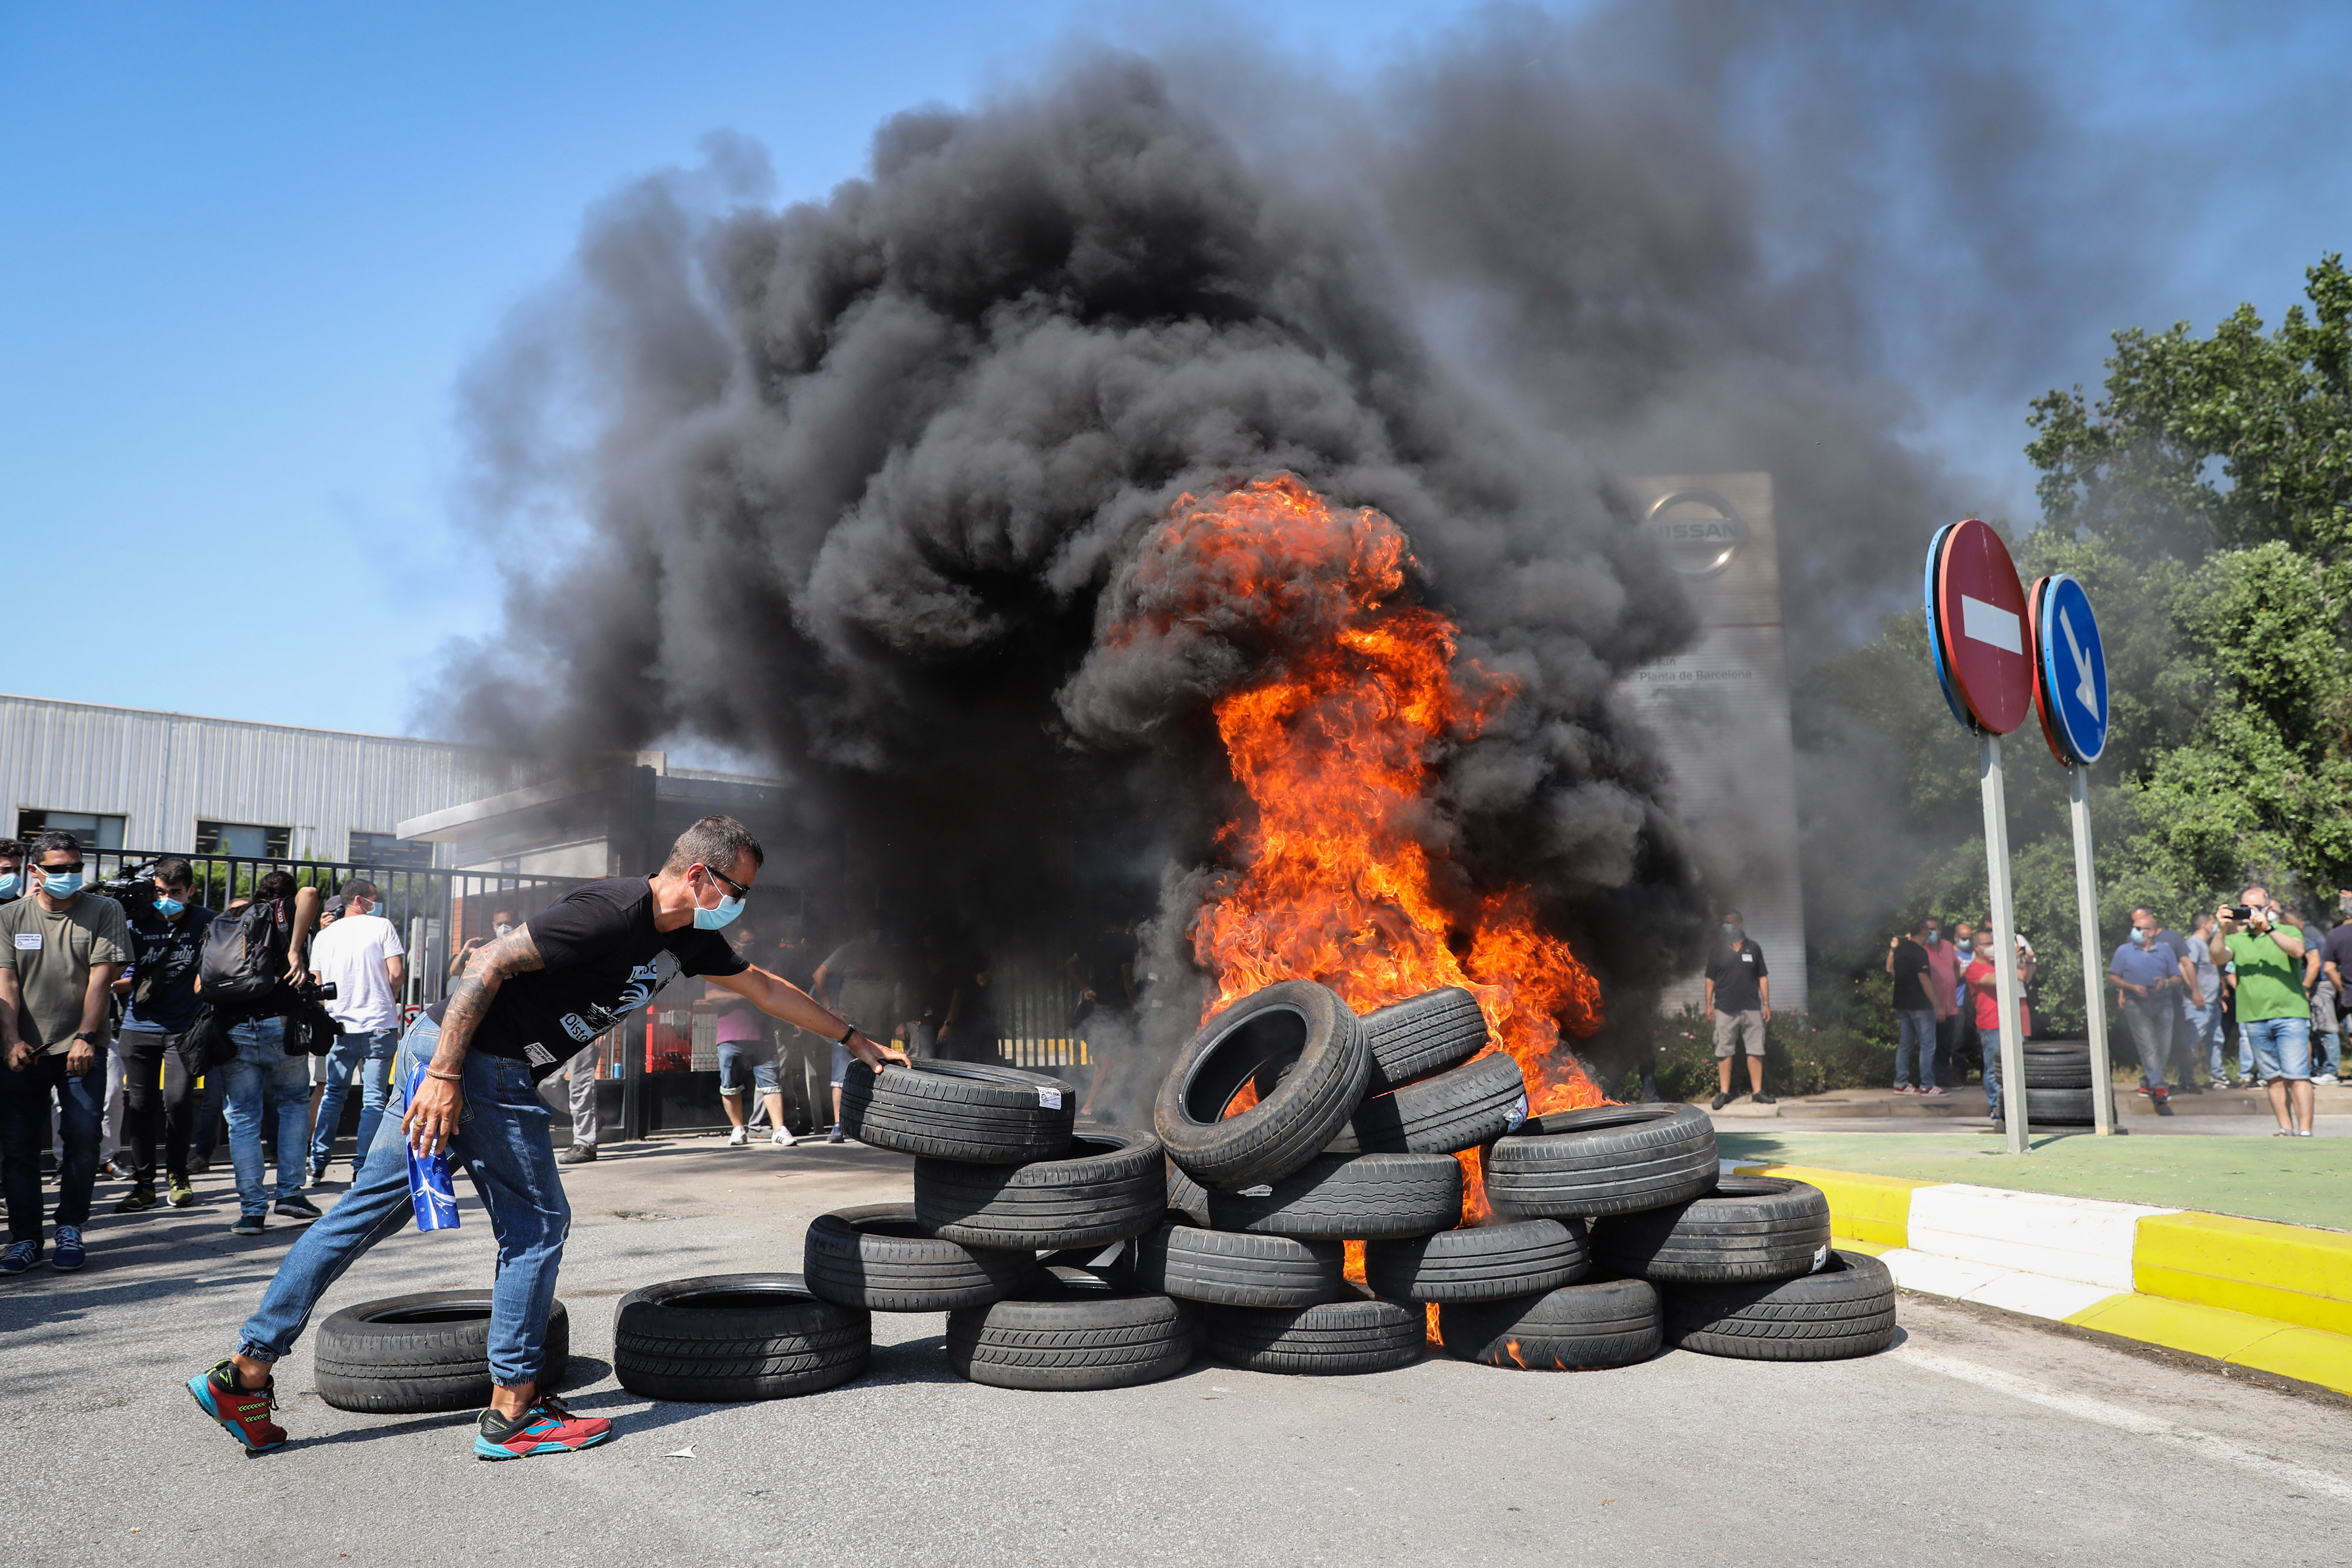 Demonstrators set fire to tyres outside Nissan plant in Barcelona to show their anger over the company's decision to close the plant.  (Bloomberg)